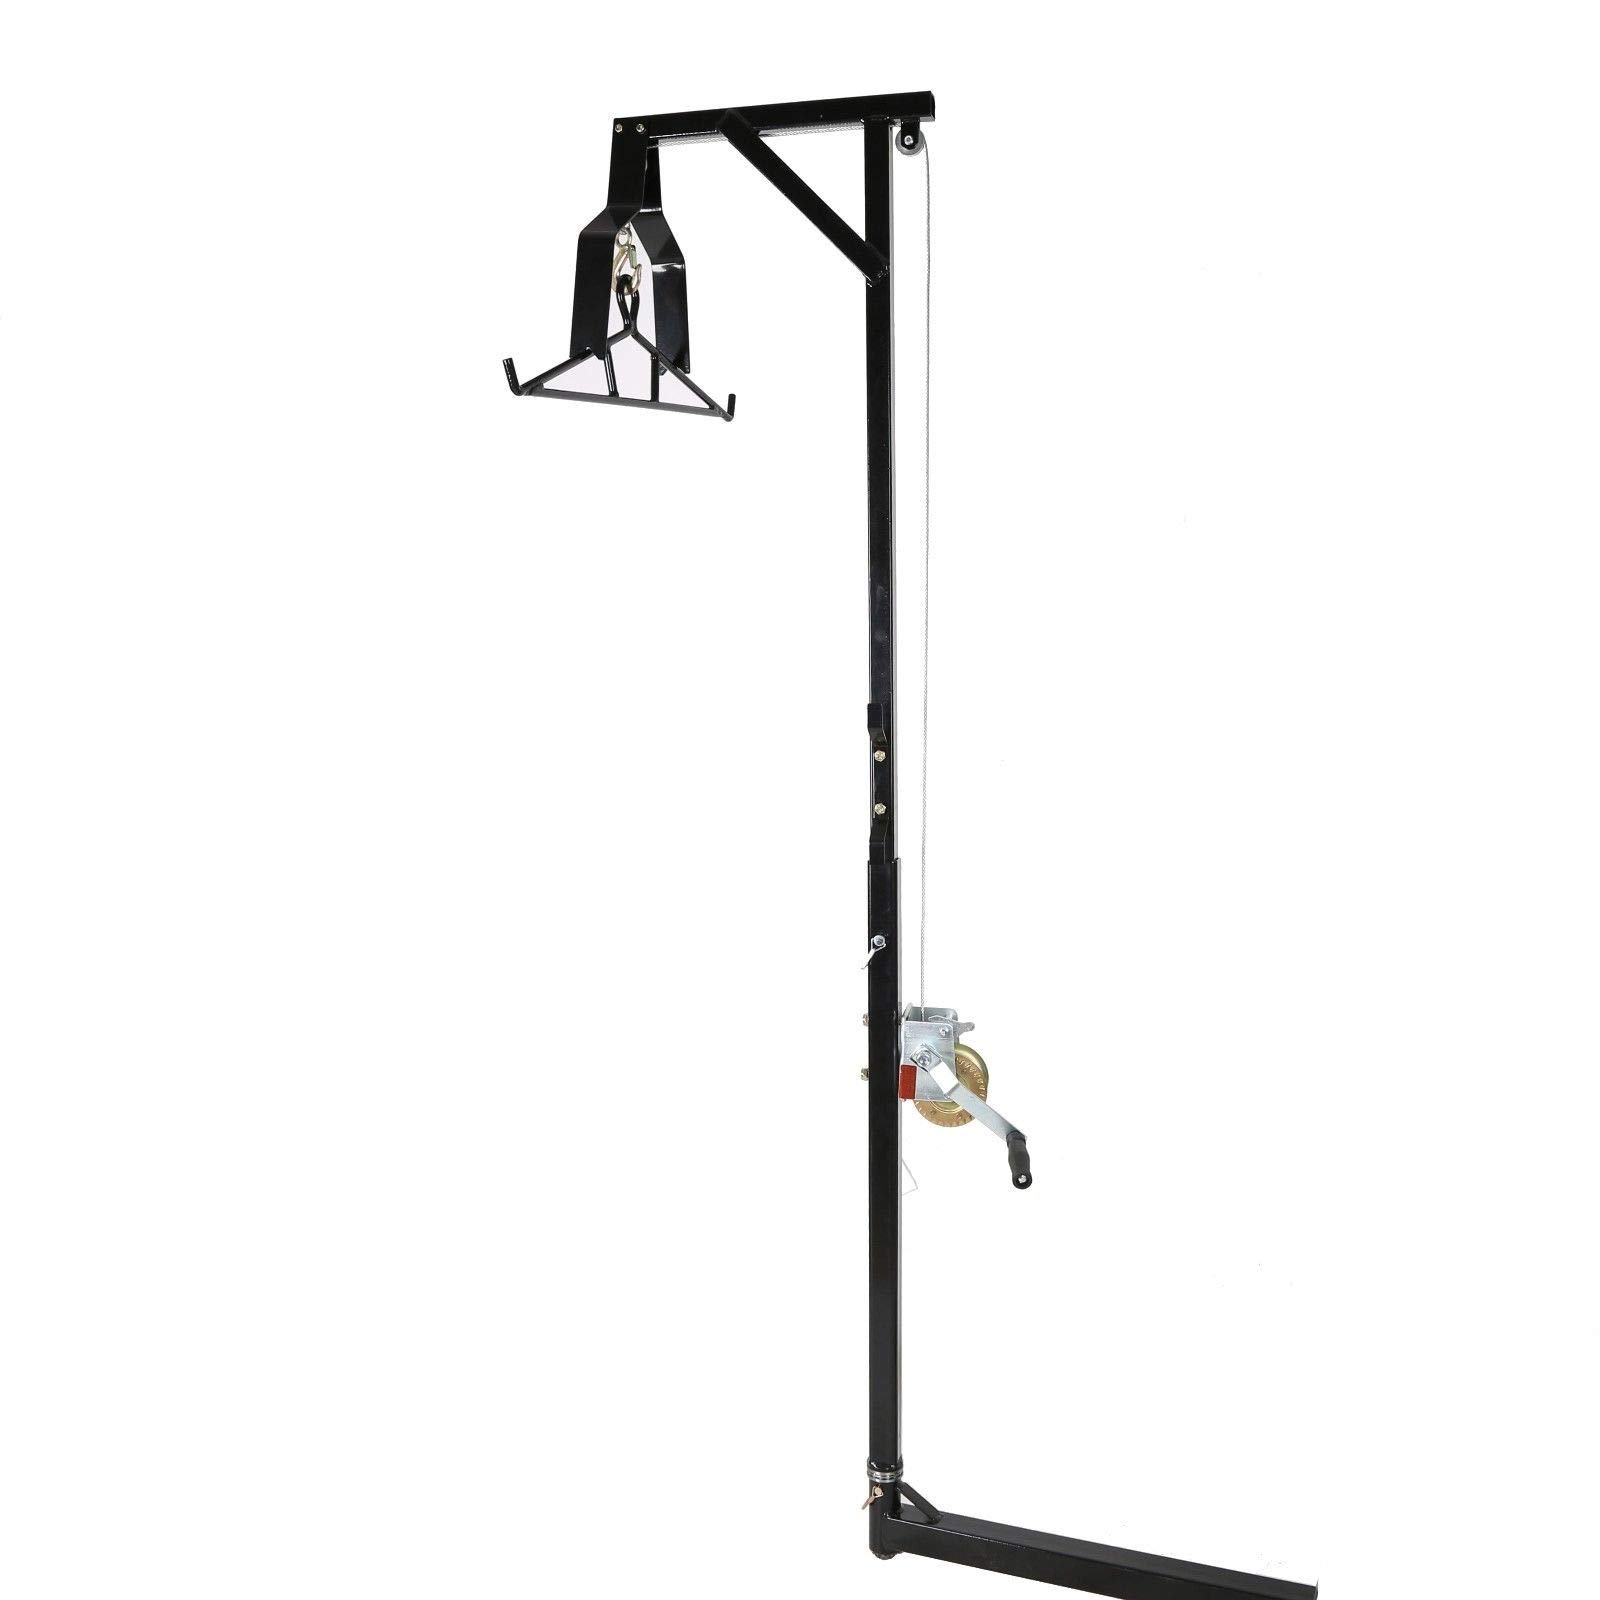 TimmyHouse Big Game Hunting Deer Hoist 500lb W/Winch Lift Swivel Gambrel Hitch-Mounted New